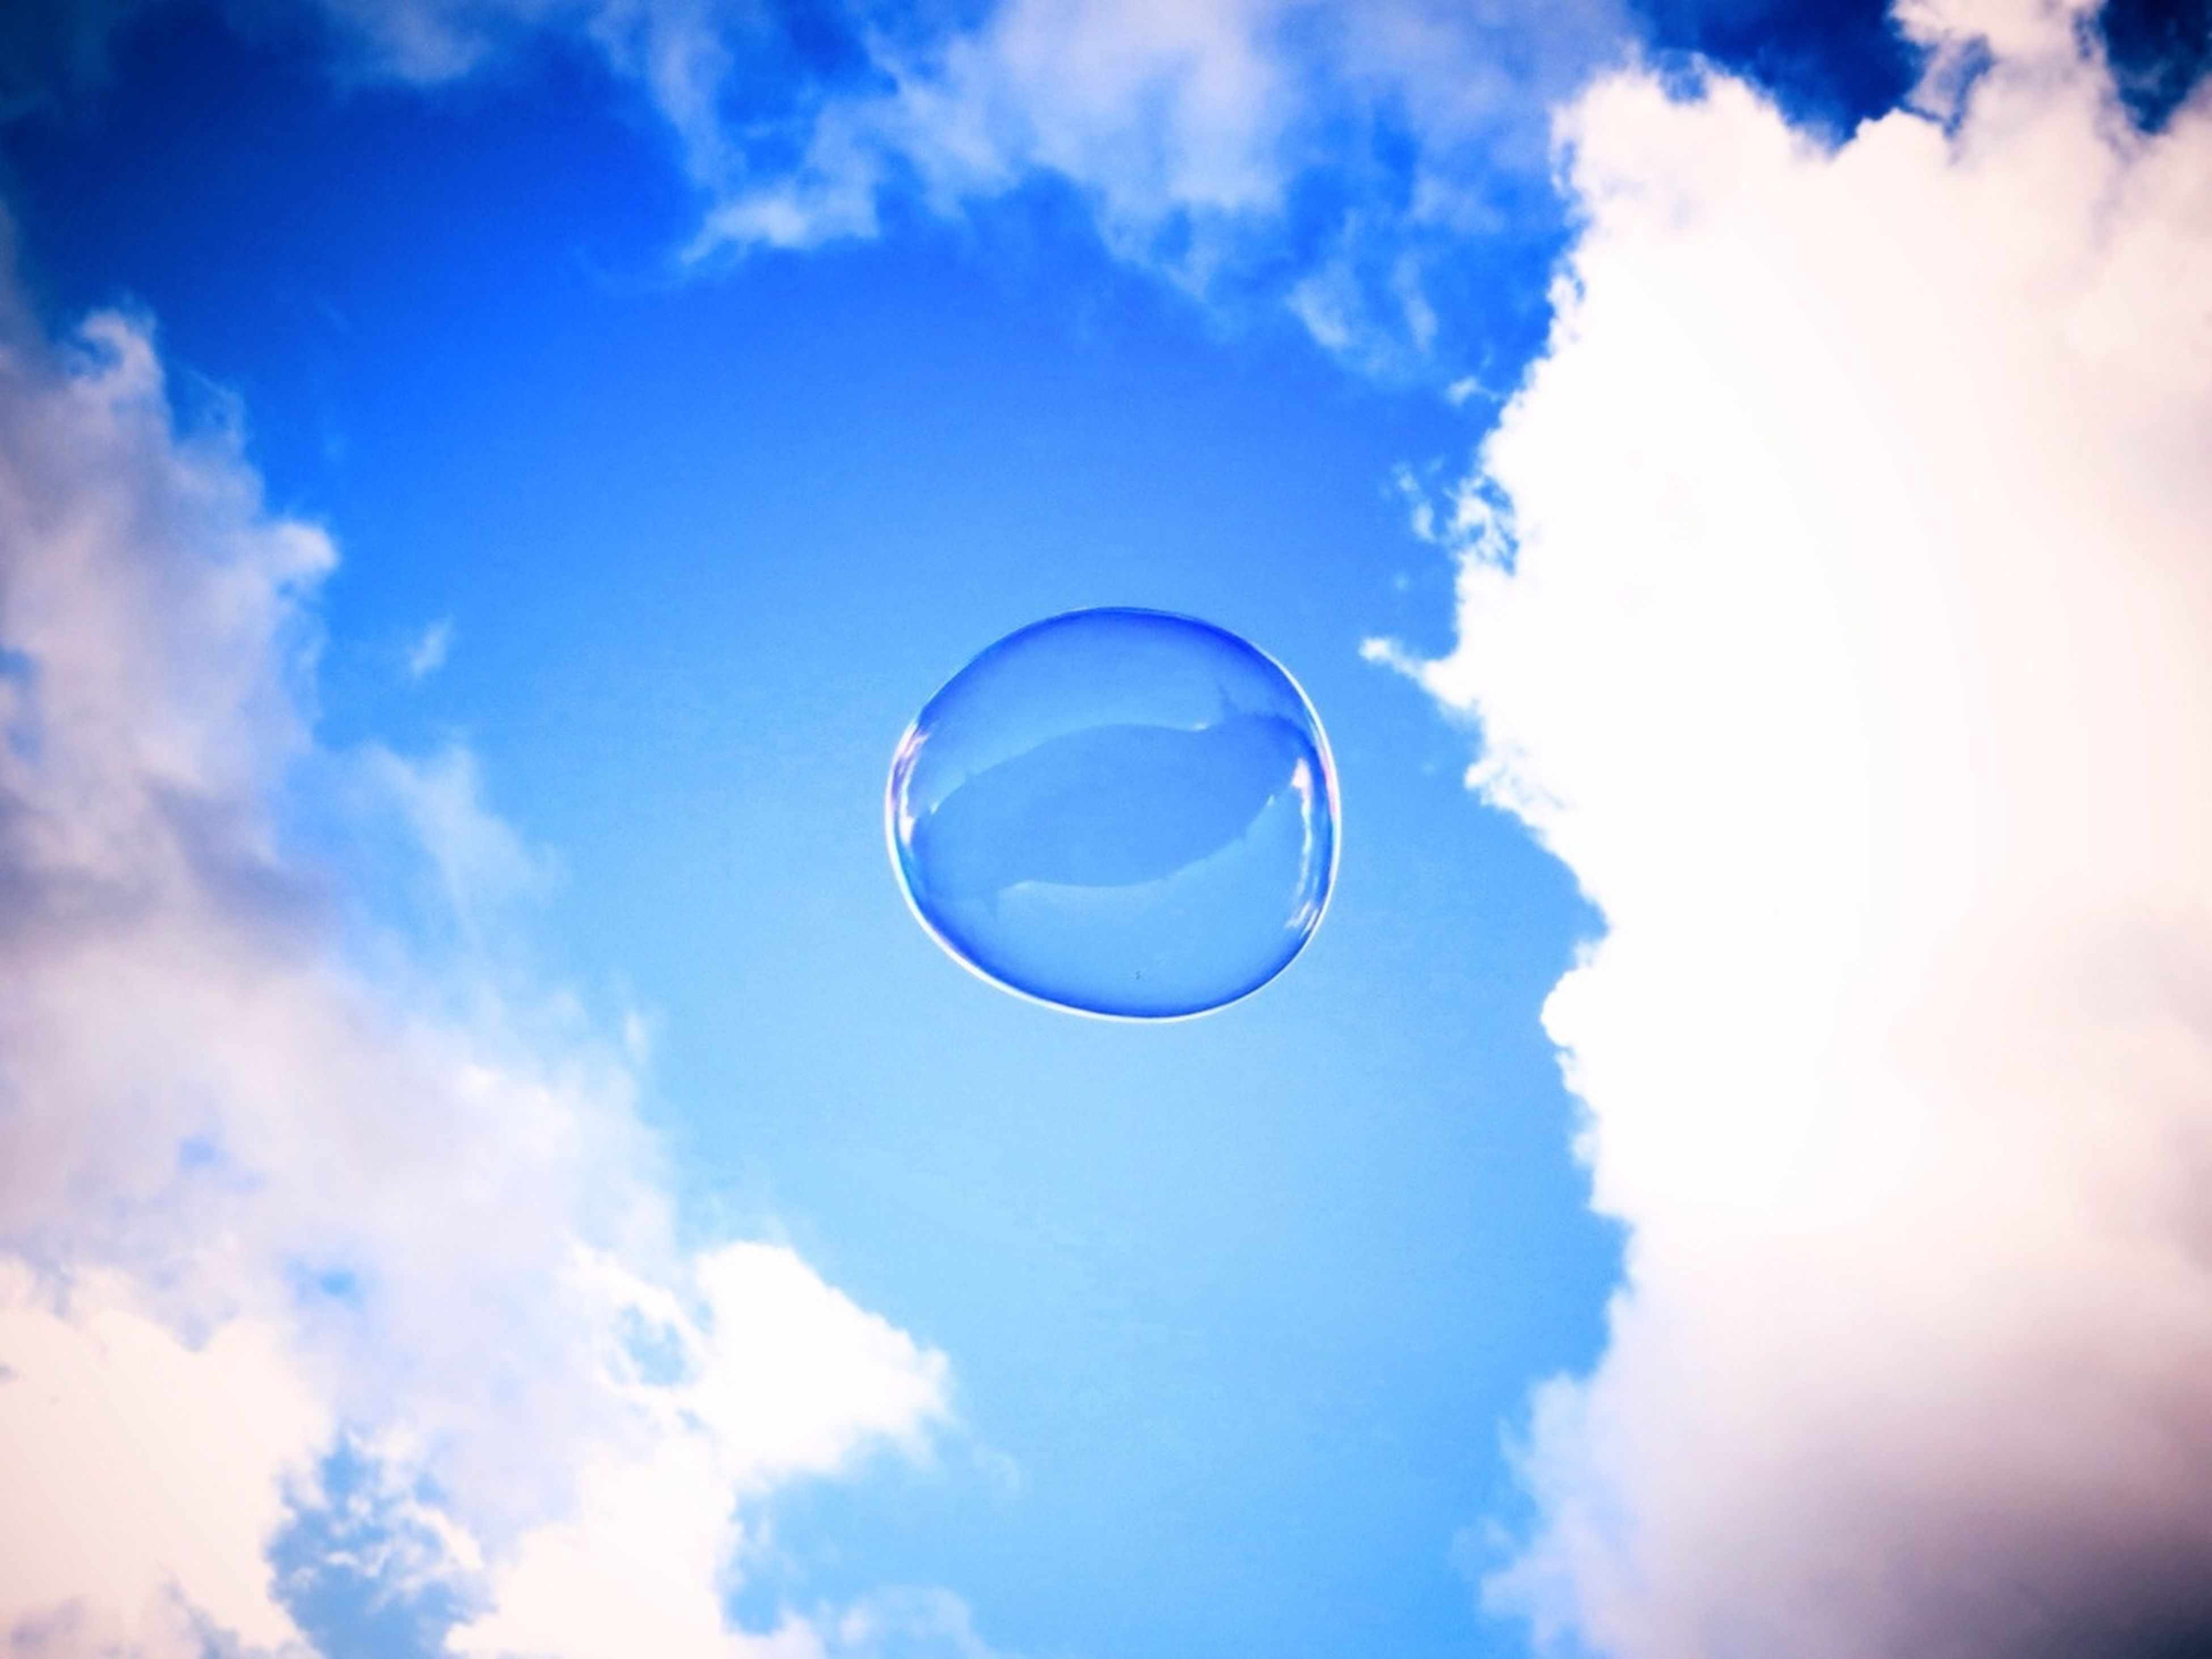 low angle view, sky, mid-air, cloud - sky, blue, circle, flying, bubble, sphere, cloud, hot air balloon, nature, beauty in nature, adventure, sport, outdoors, scenics, day, cloudy, fun